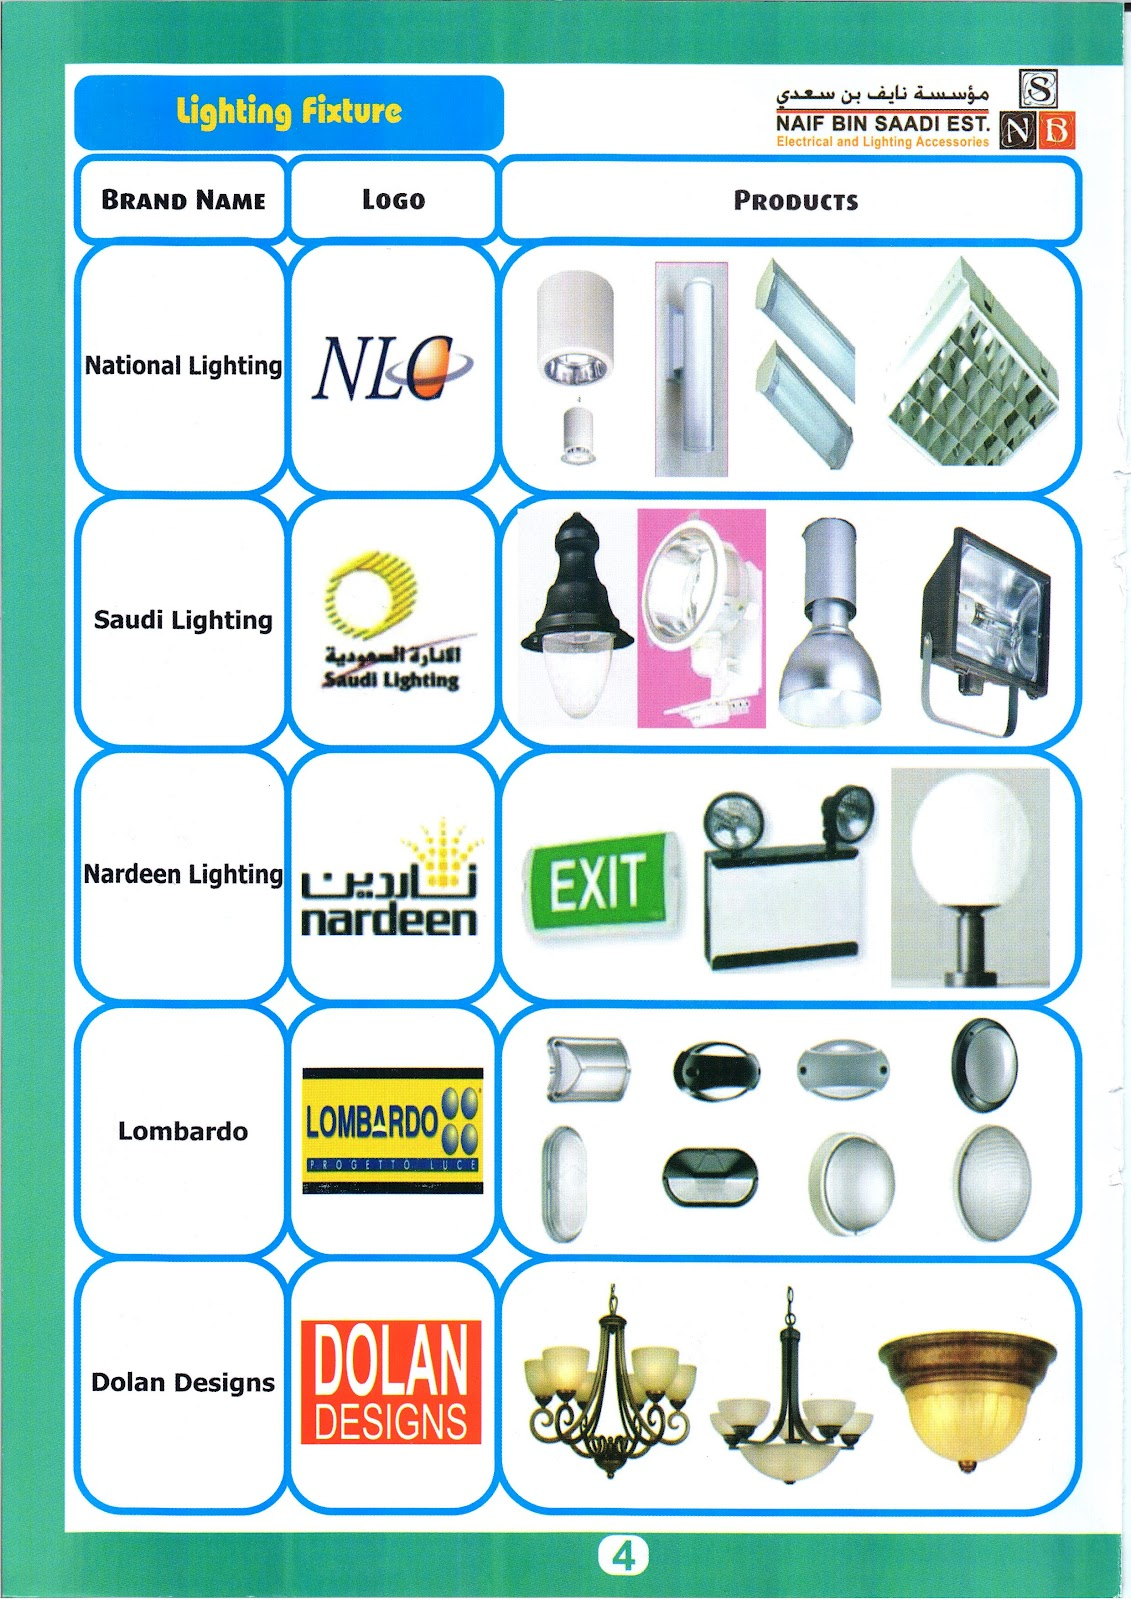 One of the largest importers distributors of electrical materials in the kingdom of saudi arabia specialize in the lighting field offers a complete